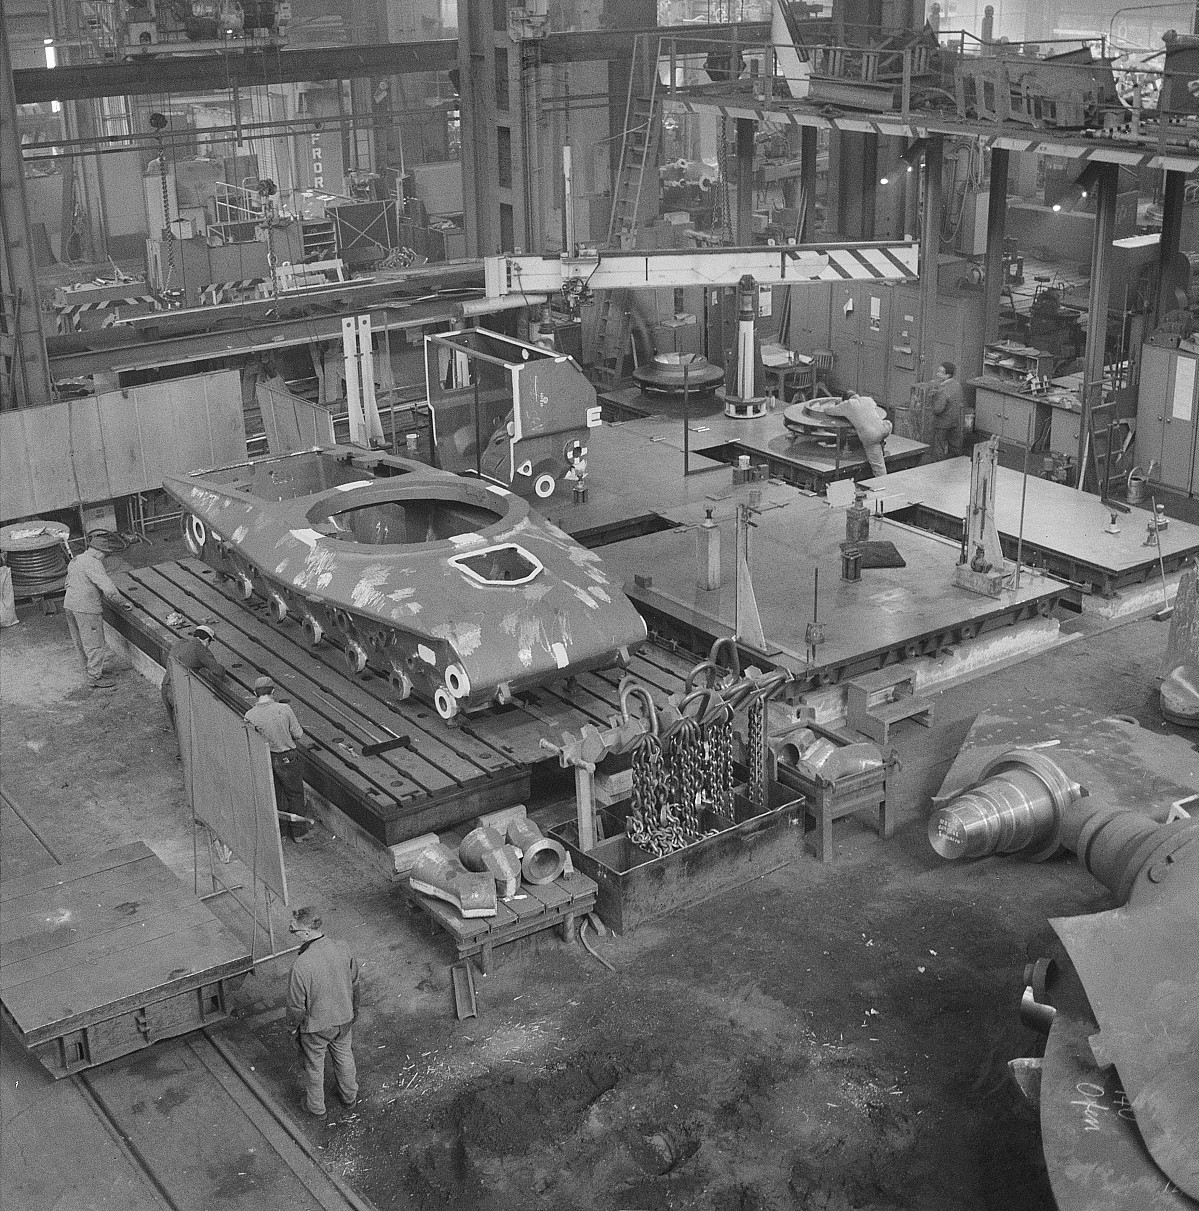 GFA 17/690642.5: Loading of a armoured tank in the steel foundry